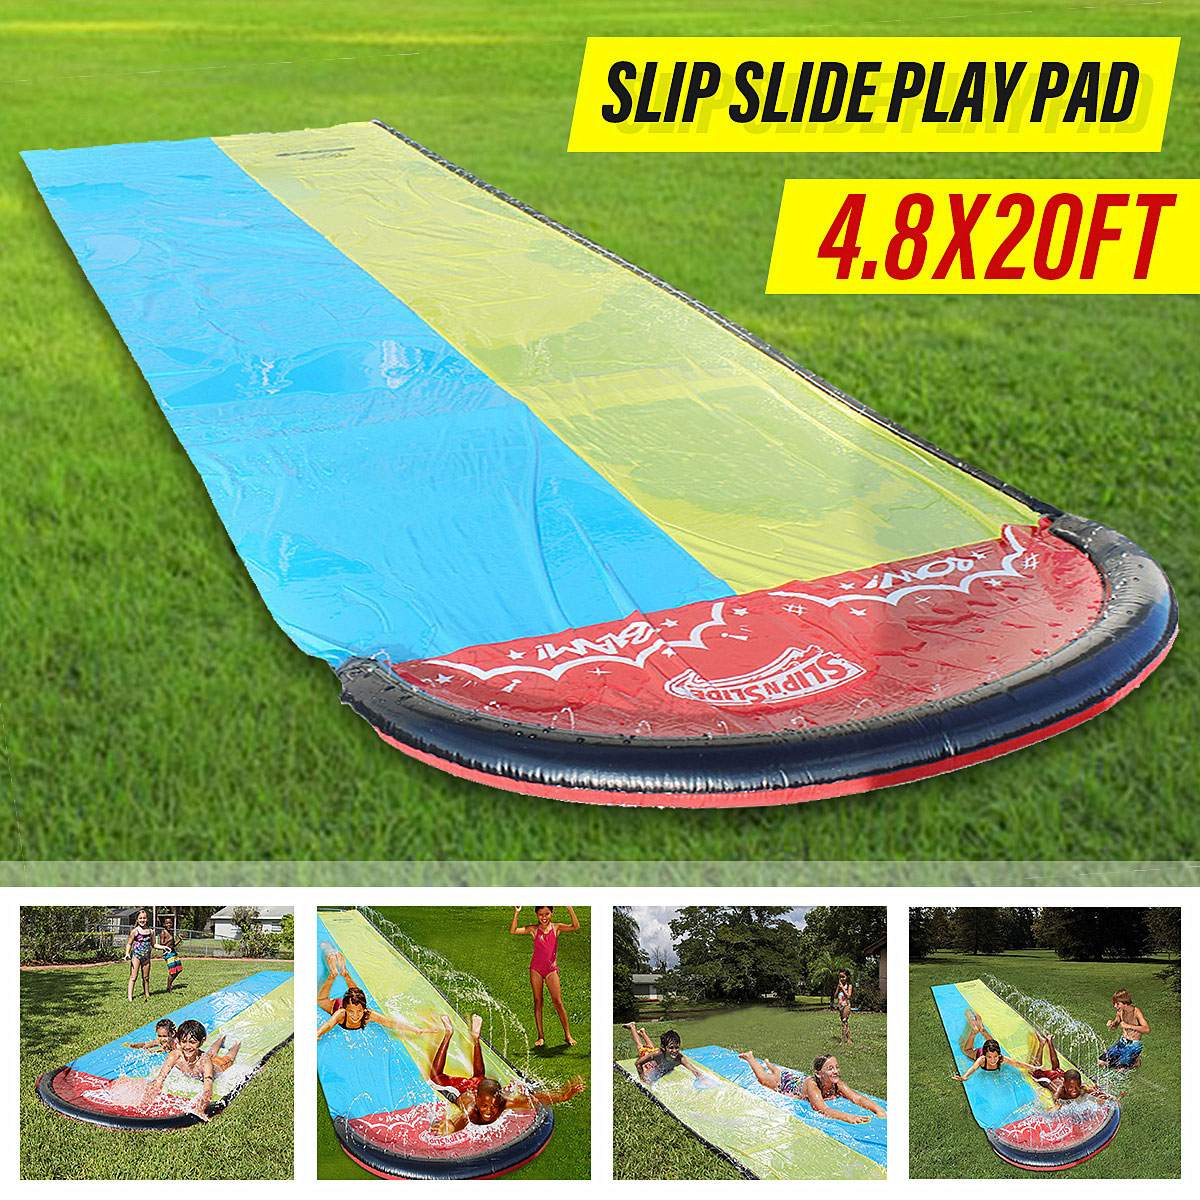 Inflatable Double Water Slide Lawn Water Slides For Children Summer Pool Kids Games Fun Toys backyard Outdoor Children Adult Toy